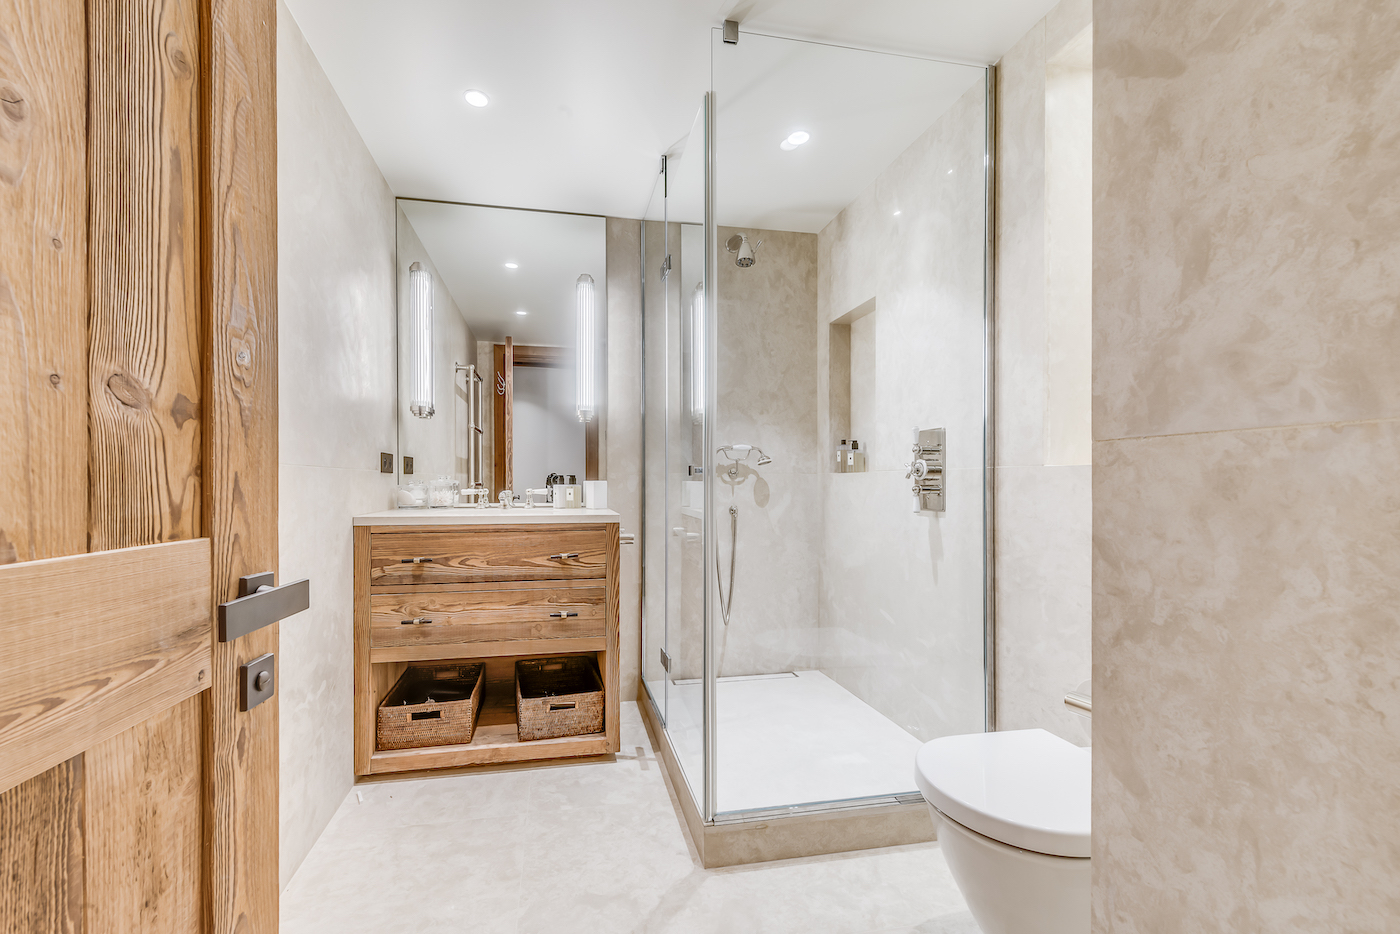 petit-chamois-bedroom-4-bathroom